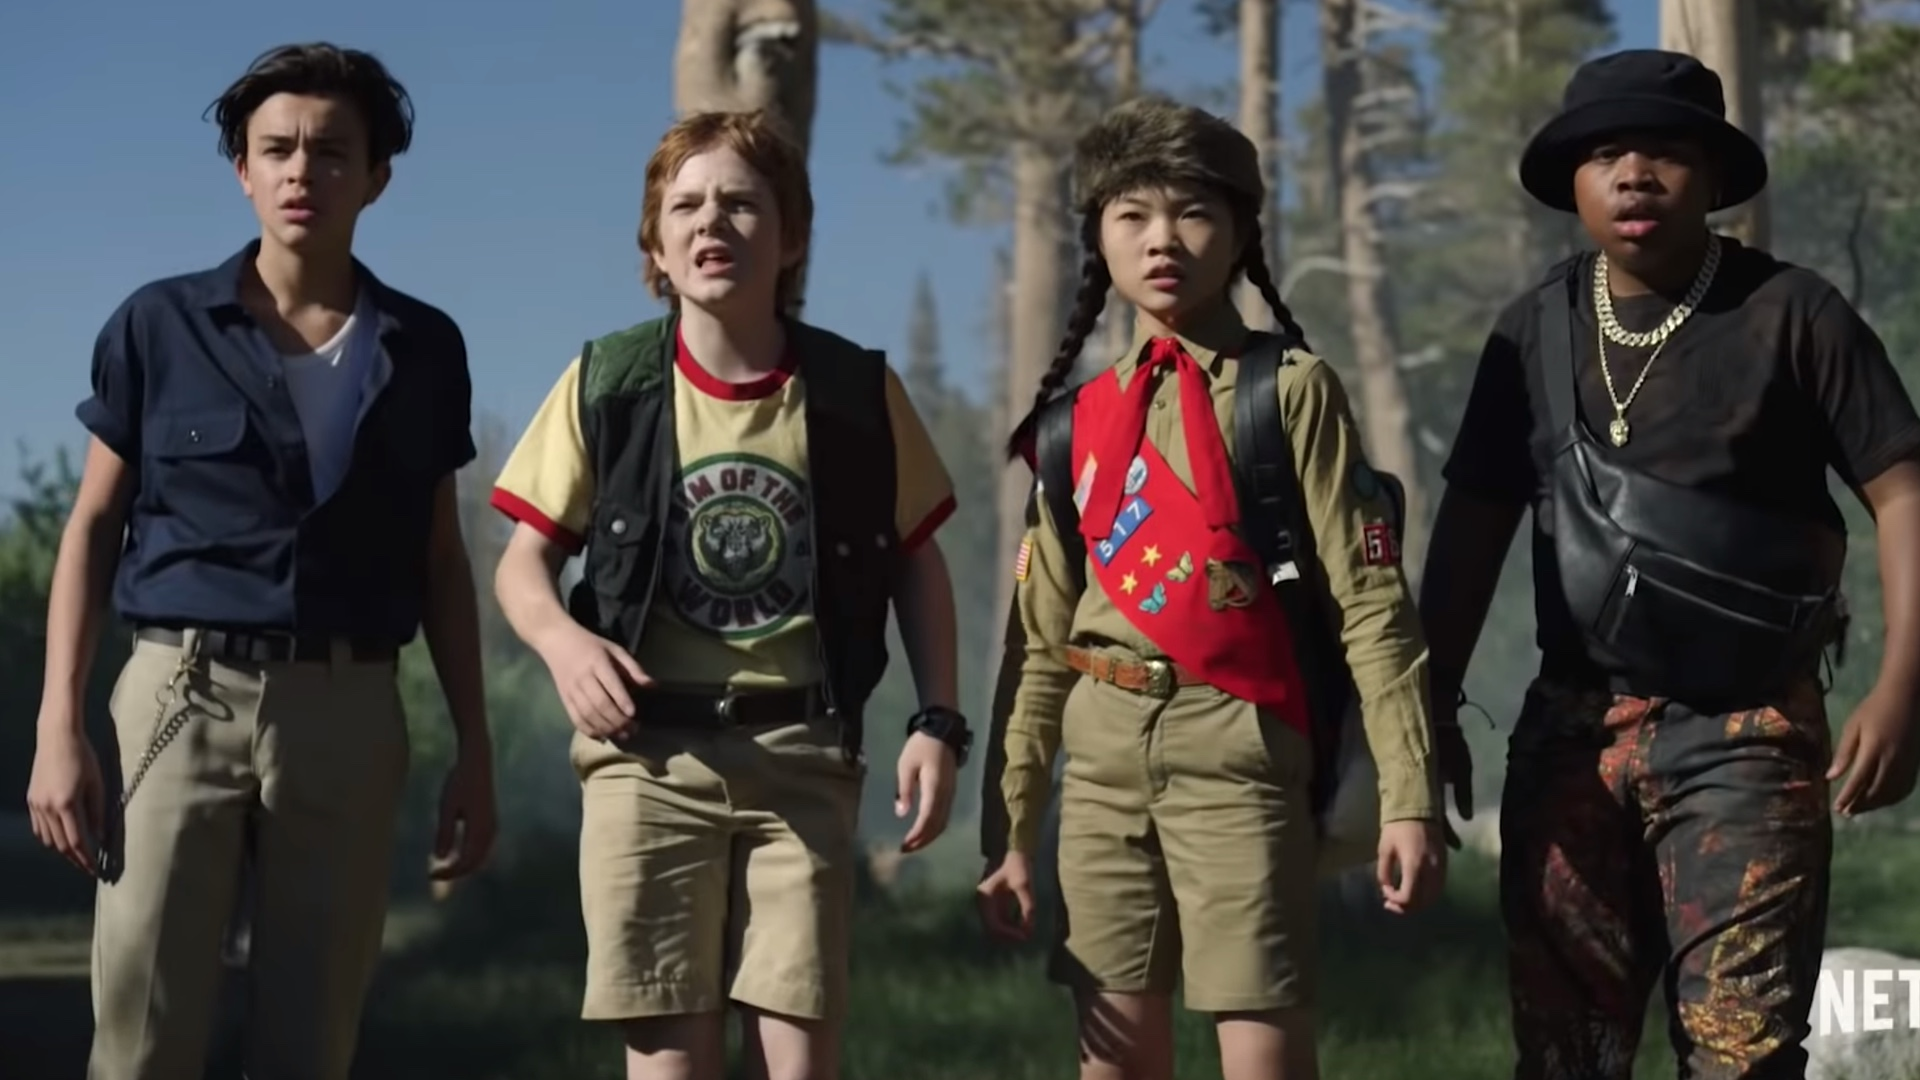 Young Teens Fight Against an Alien Invasion in Trailer for 1920x1080